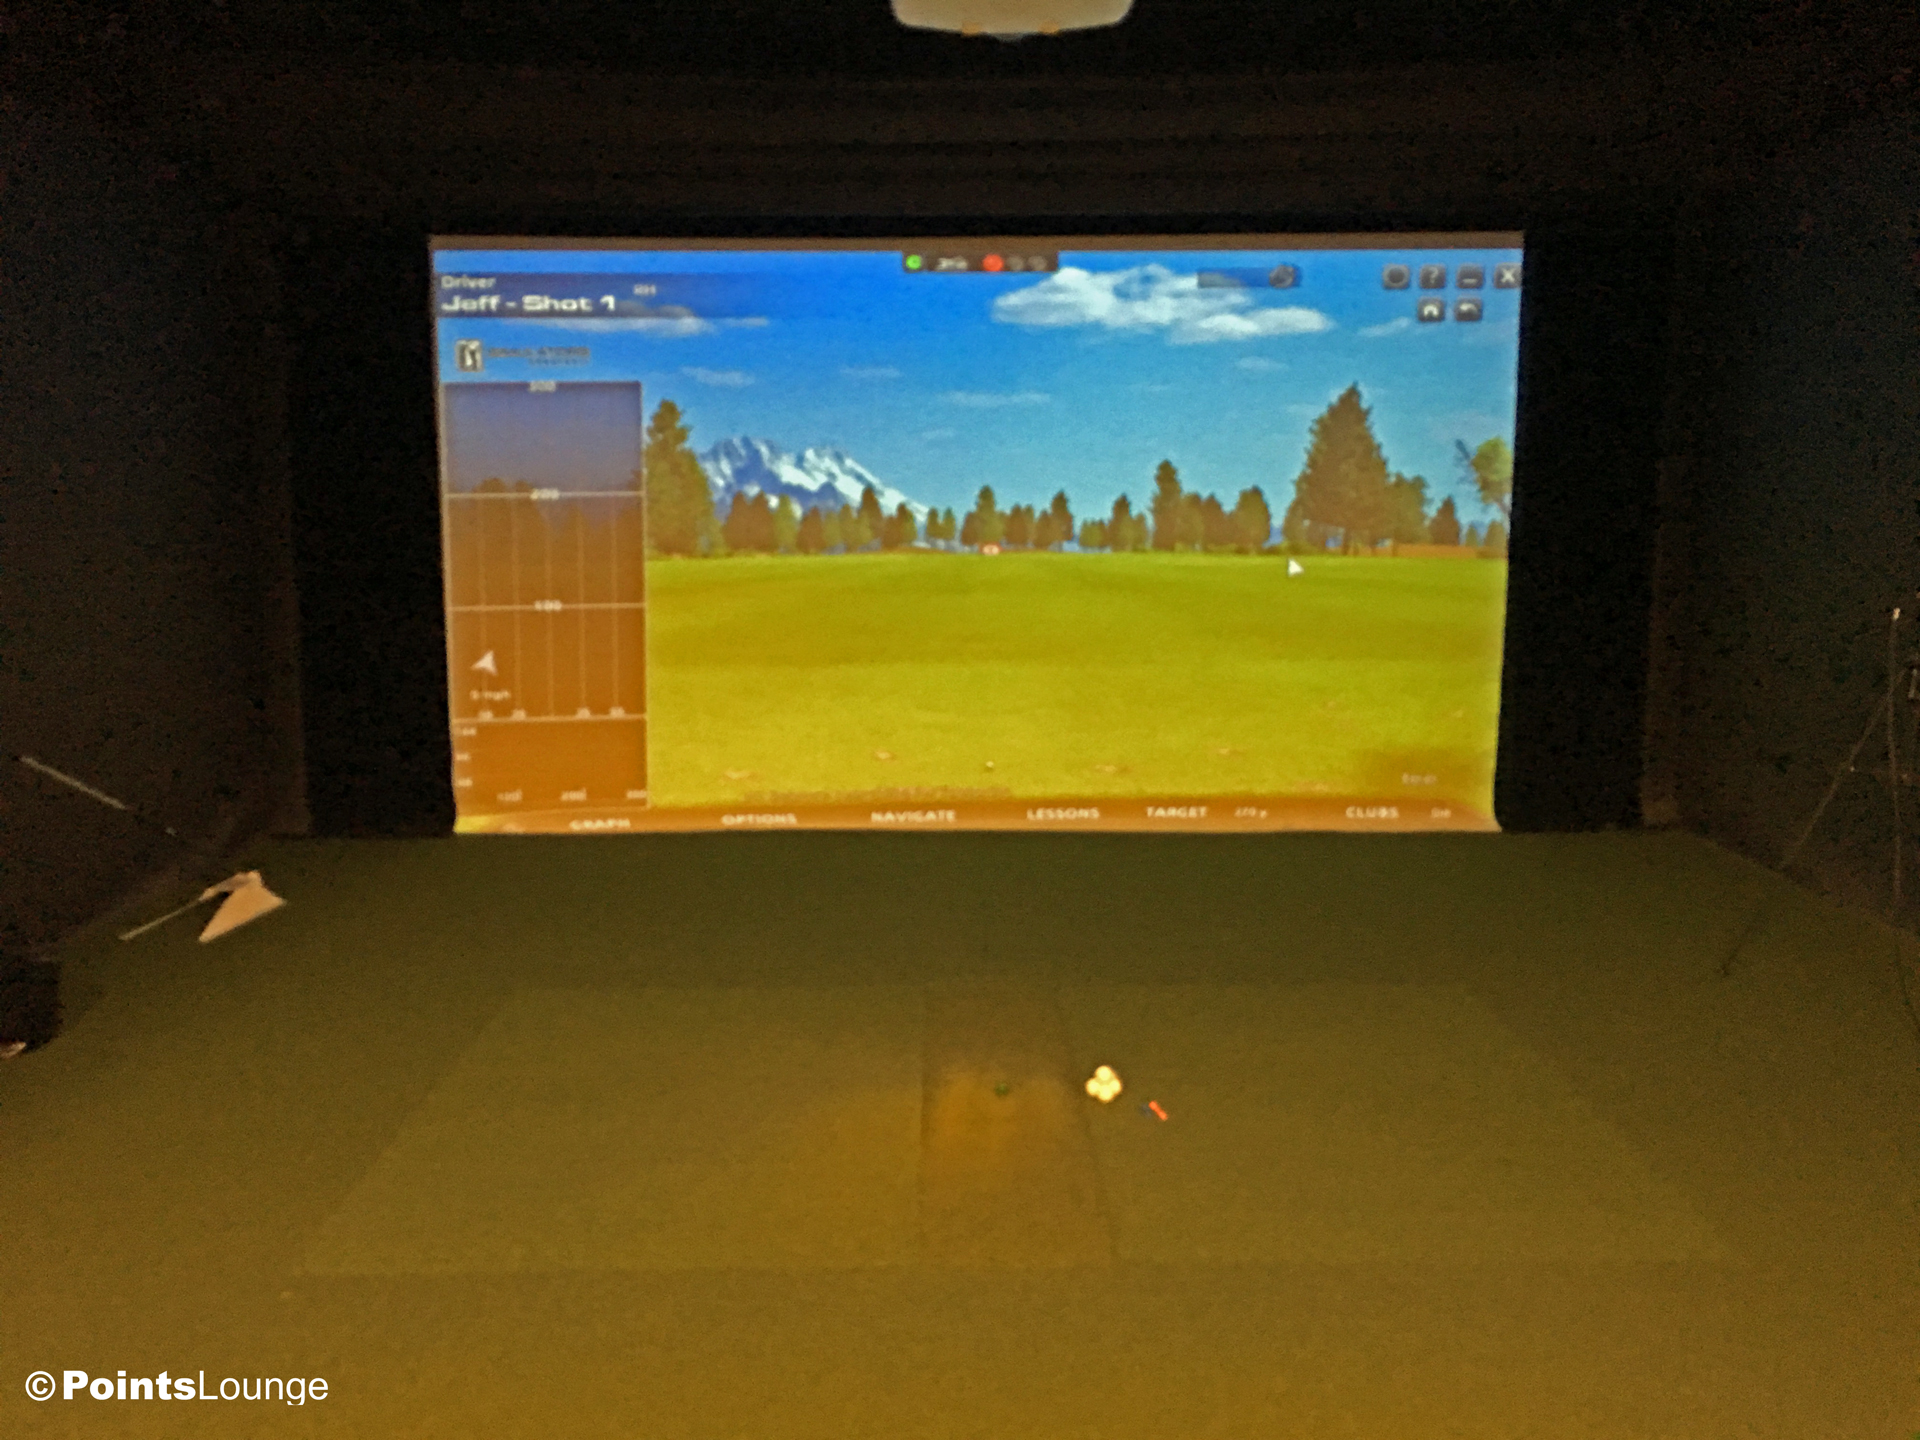 A view of a golf simulator inside the PGA MSP golf-themed airport lounge at the Minneapolis-St. Paul International Airport. One of the ways the lounge can be accessed is with Priority Pass membership. (Click for a larger image.)